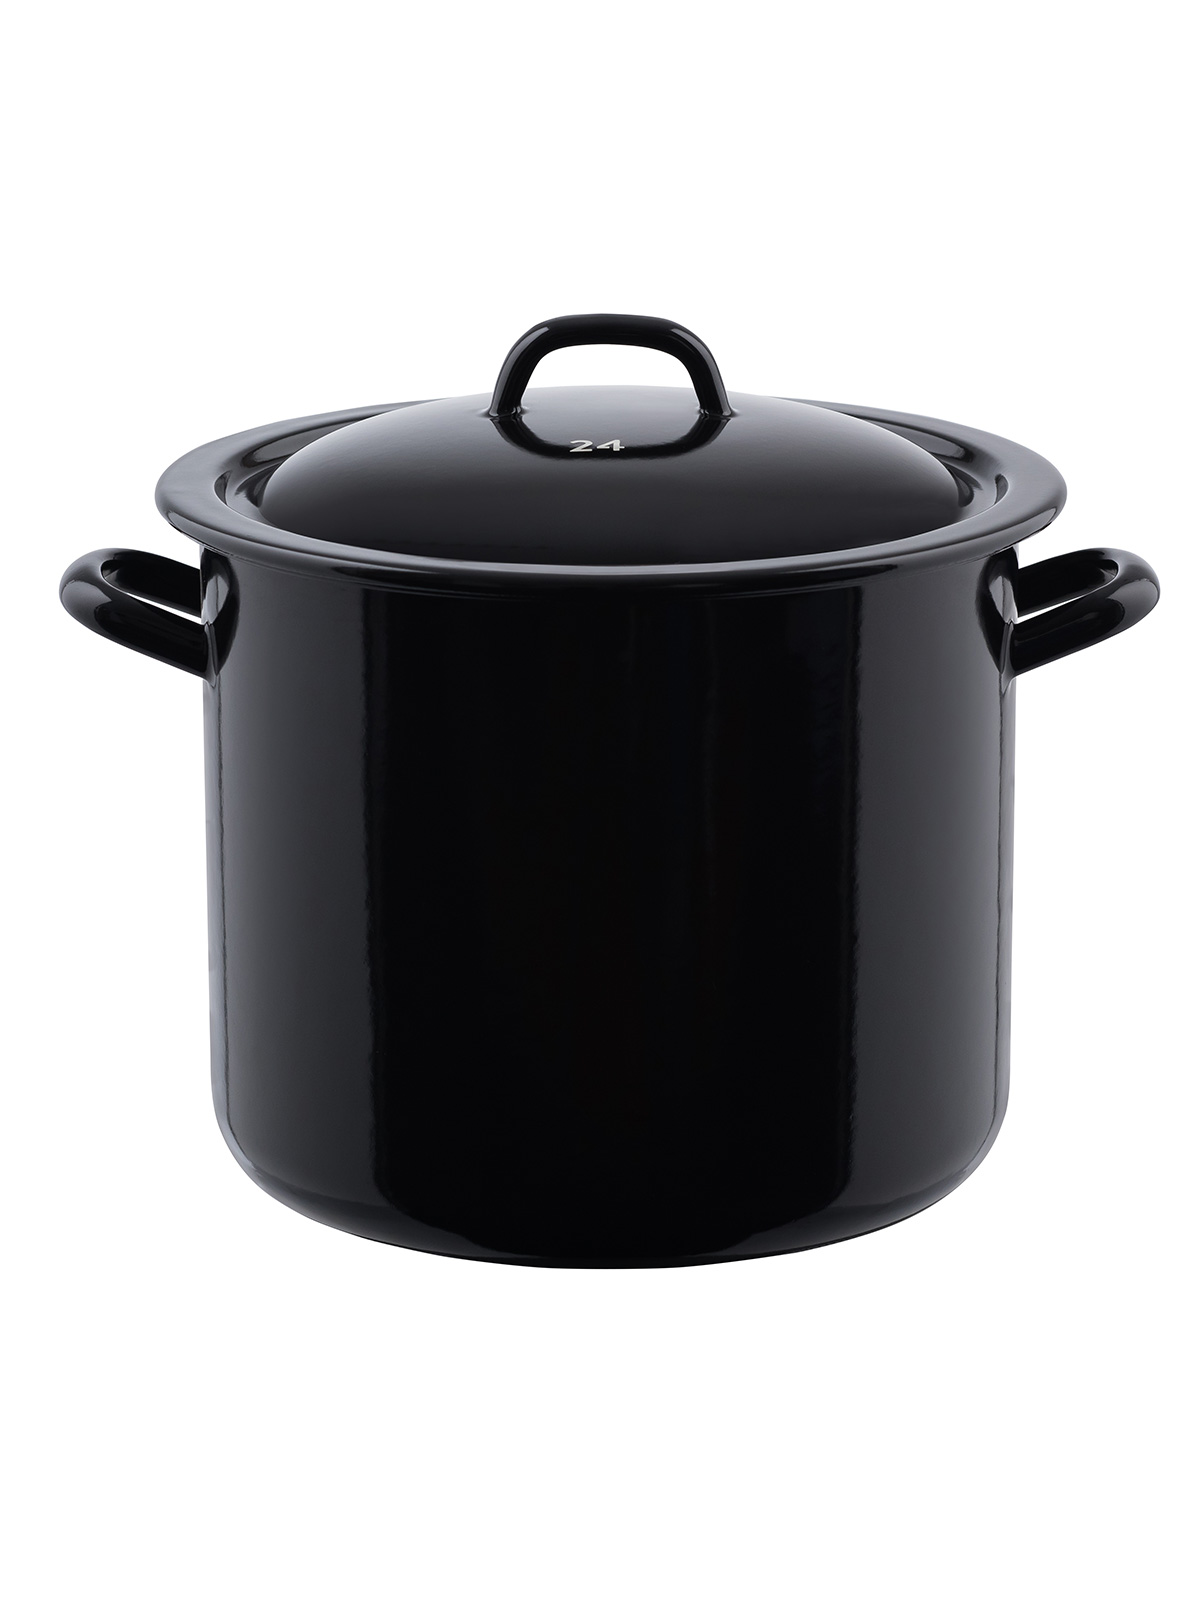 Classic high casserol with cover, black/white 8 liter